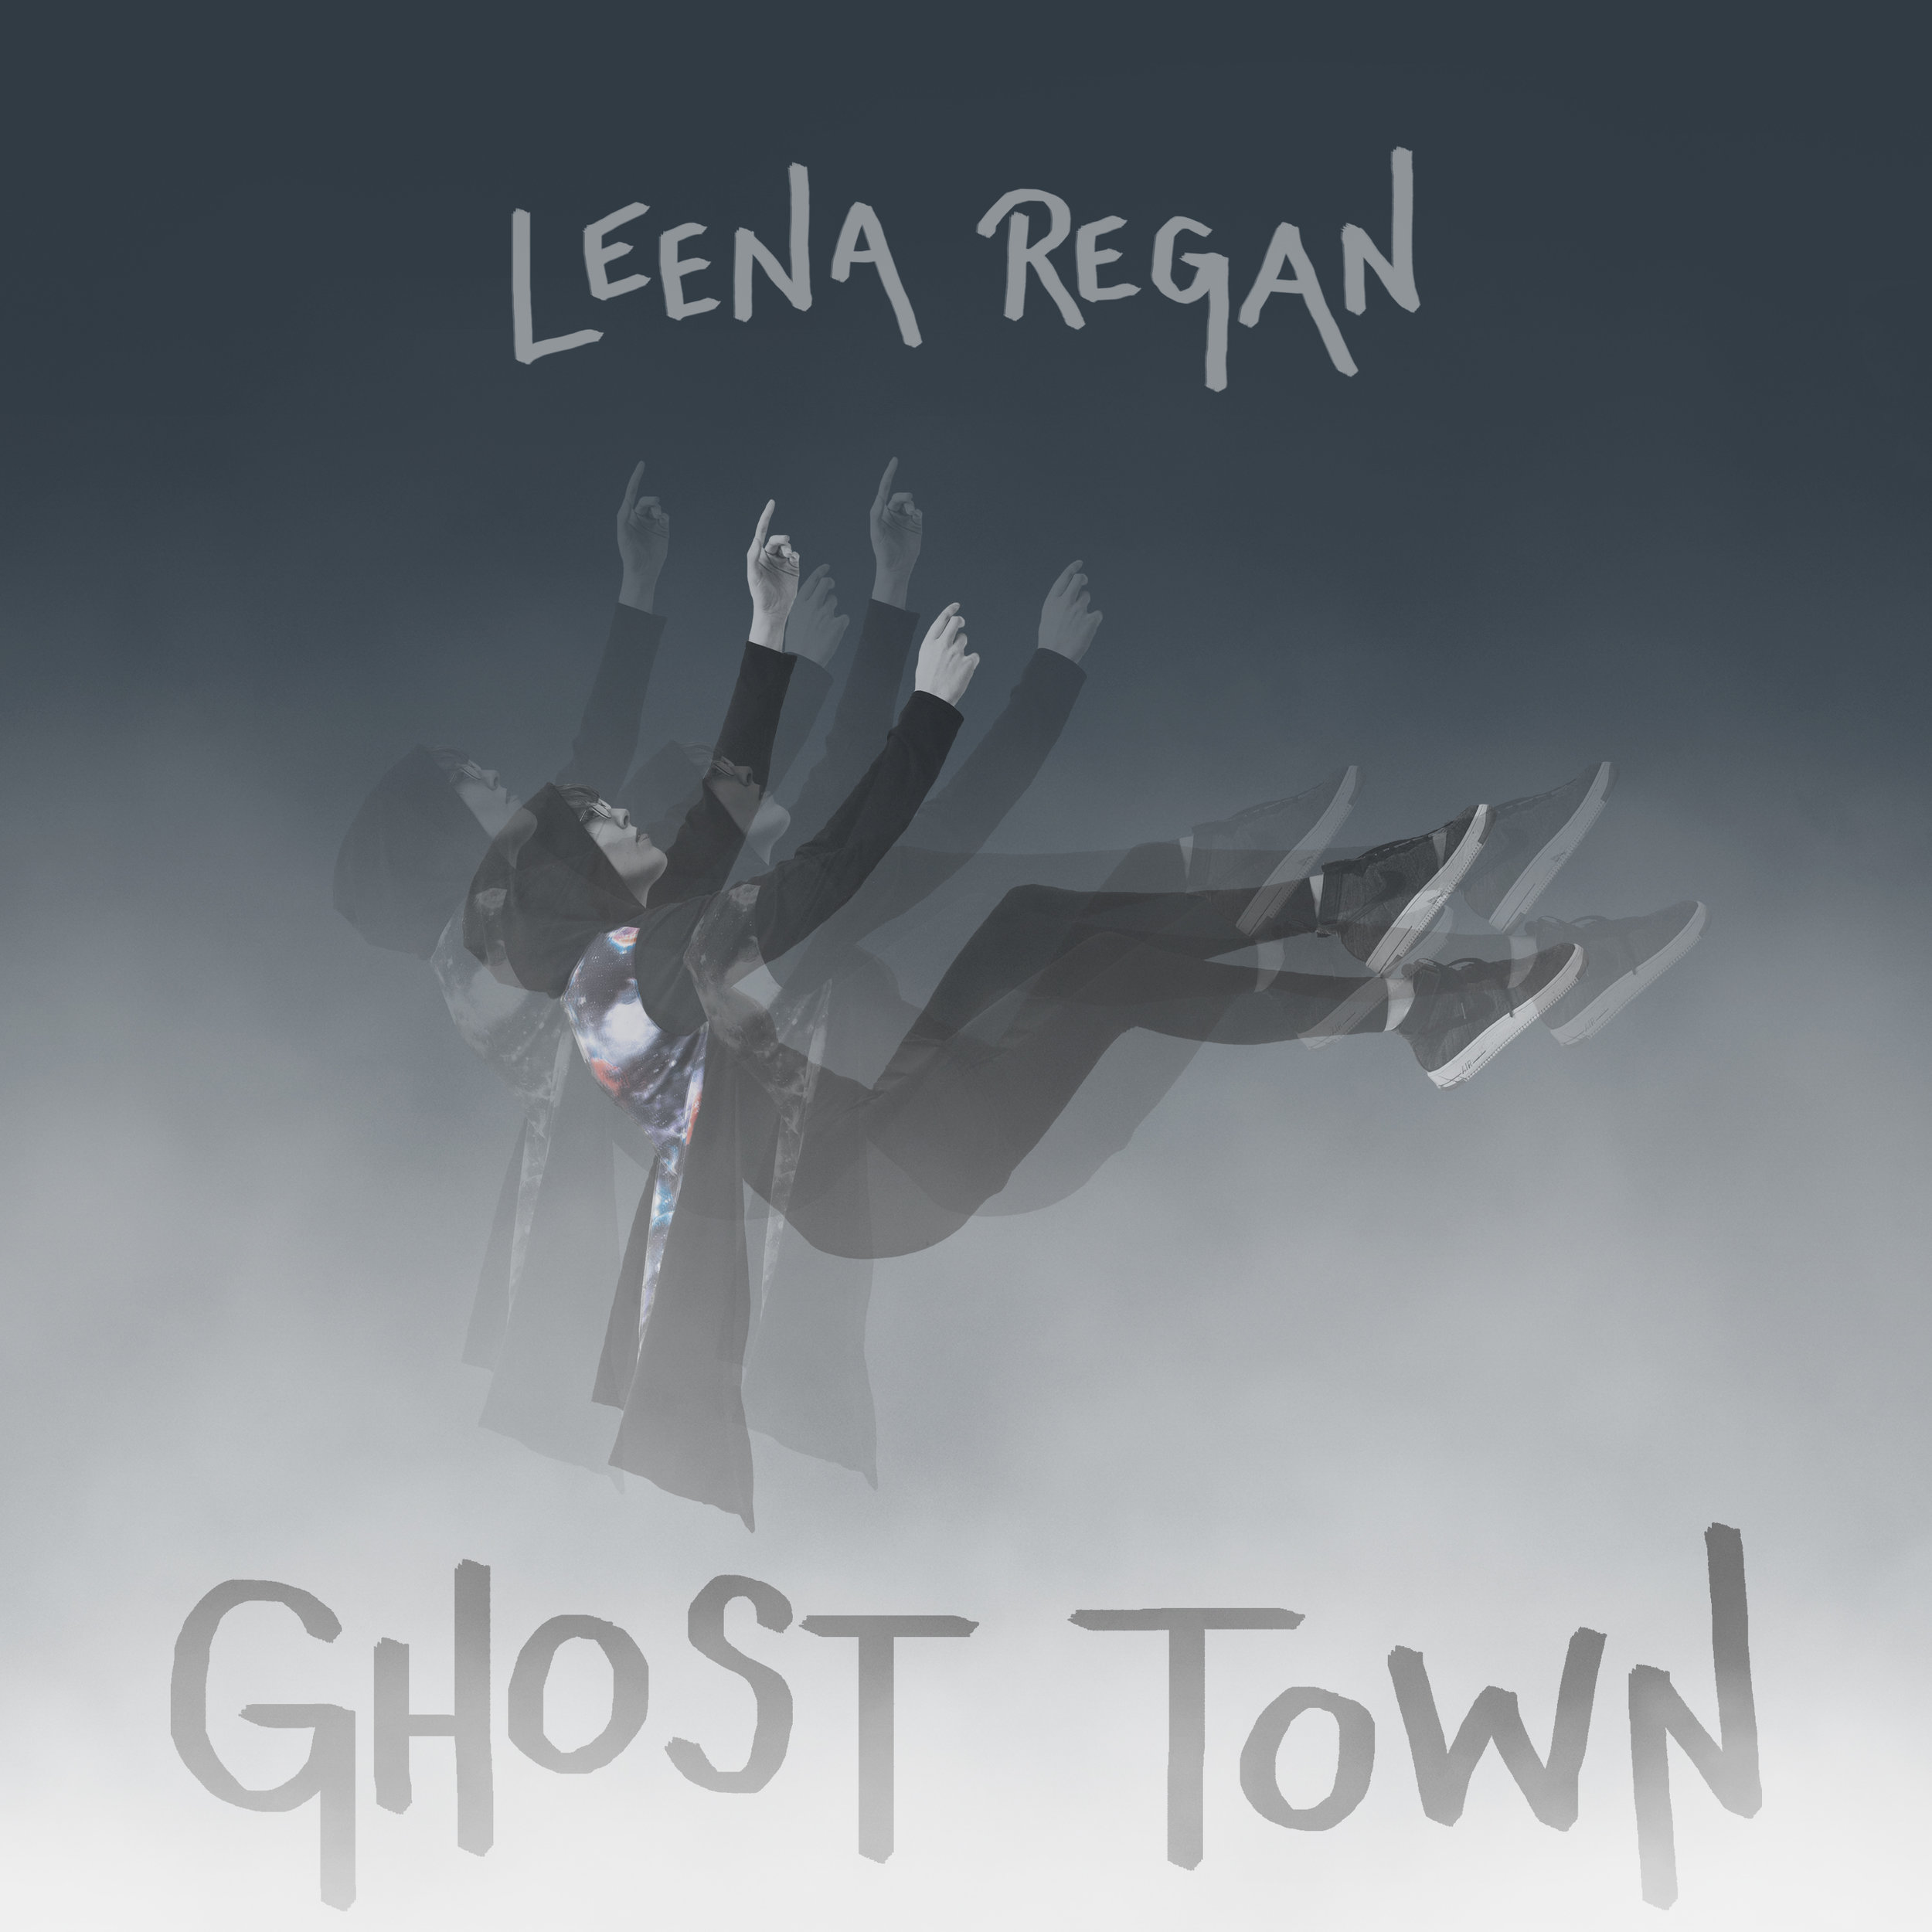 "CLICK THE ABOVE IMAGE FOR DETAILS AND PRESS CONTENT RELATED TO LEENA REGAN'S UPCOMING SINGLE, ""GHOST TOWN."" FOR INQUIRIES, CONTACT INDIEROCKSTARSPR@GMAIL.COM."